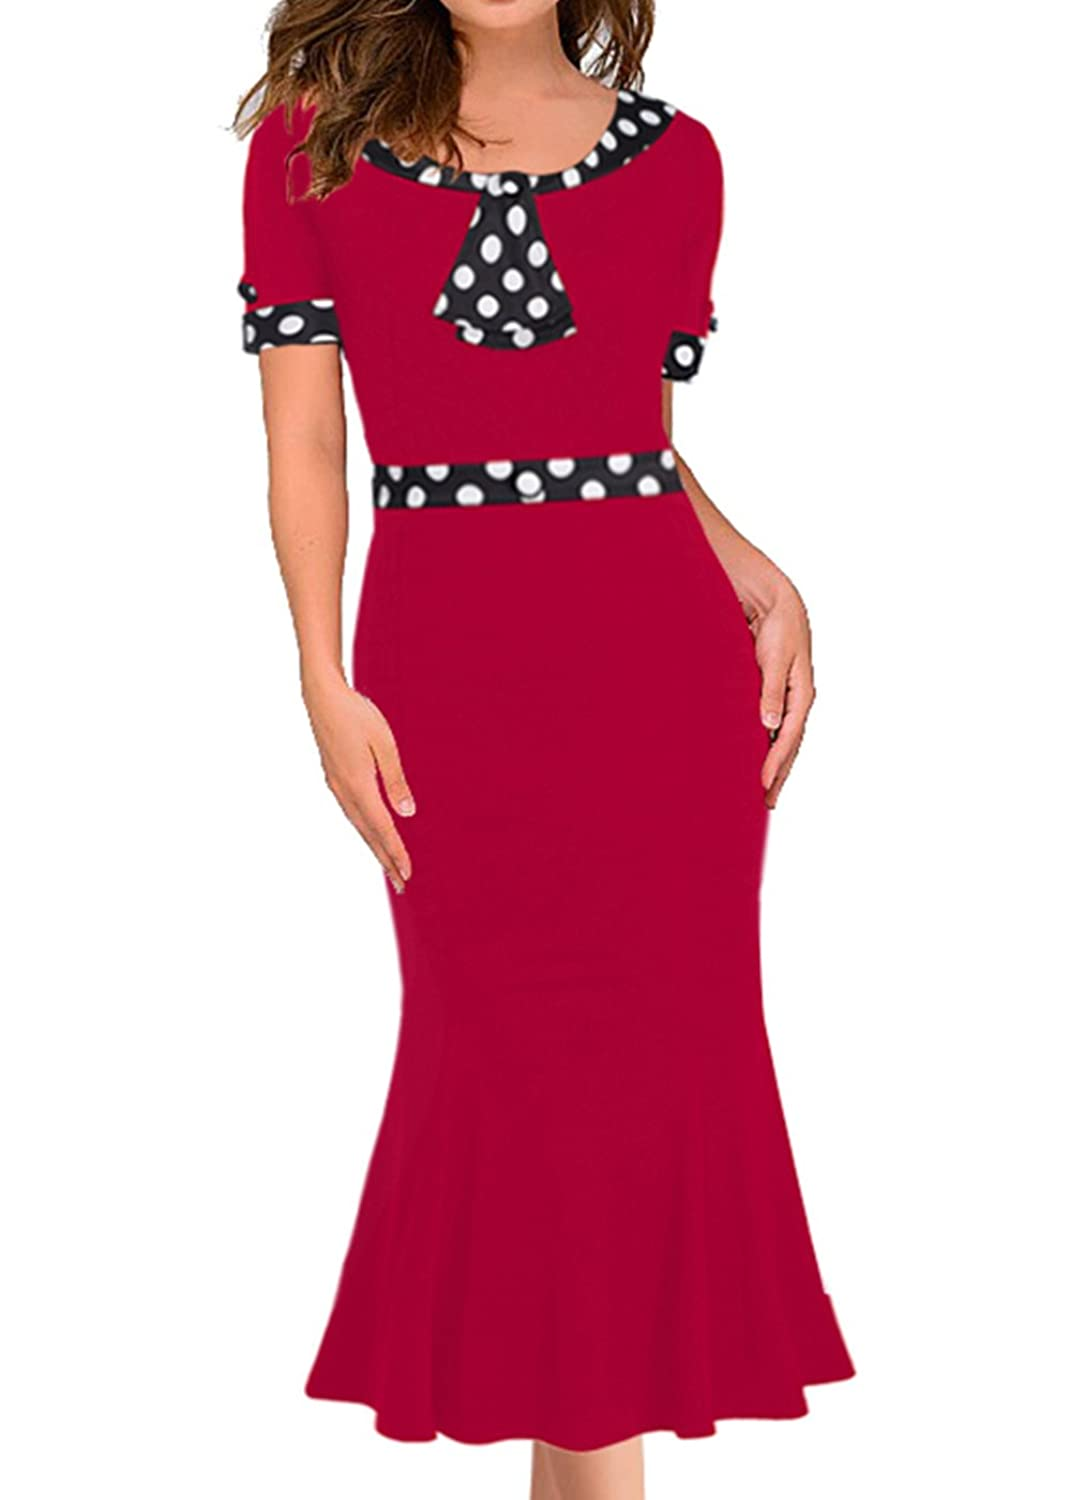 Wiggle Dresses | Pencil Dresses Womens Vintage 1950s Elegant Polka Dot Bow-knot Fishtail Cocktail Party Dress $24.99 AT vintagedancer.com